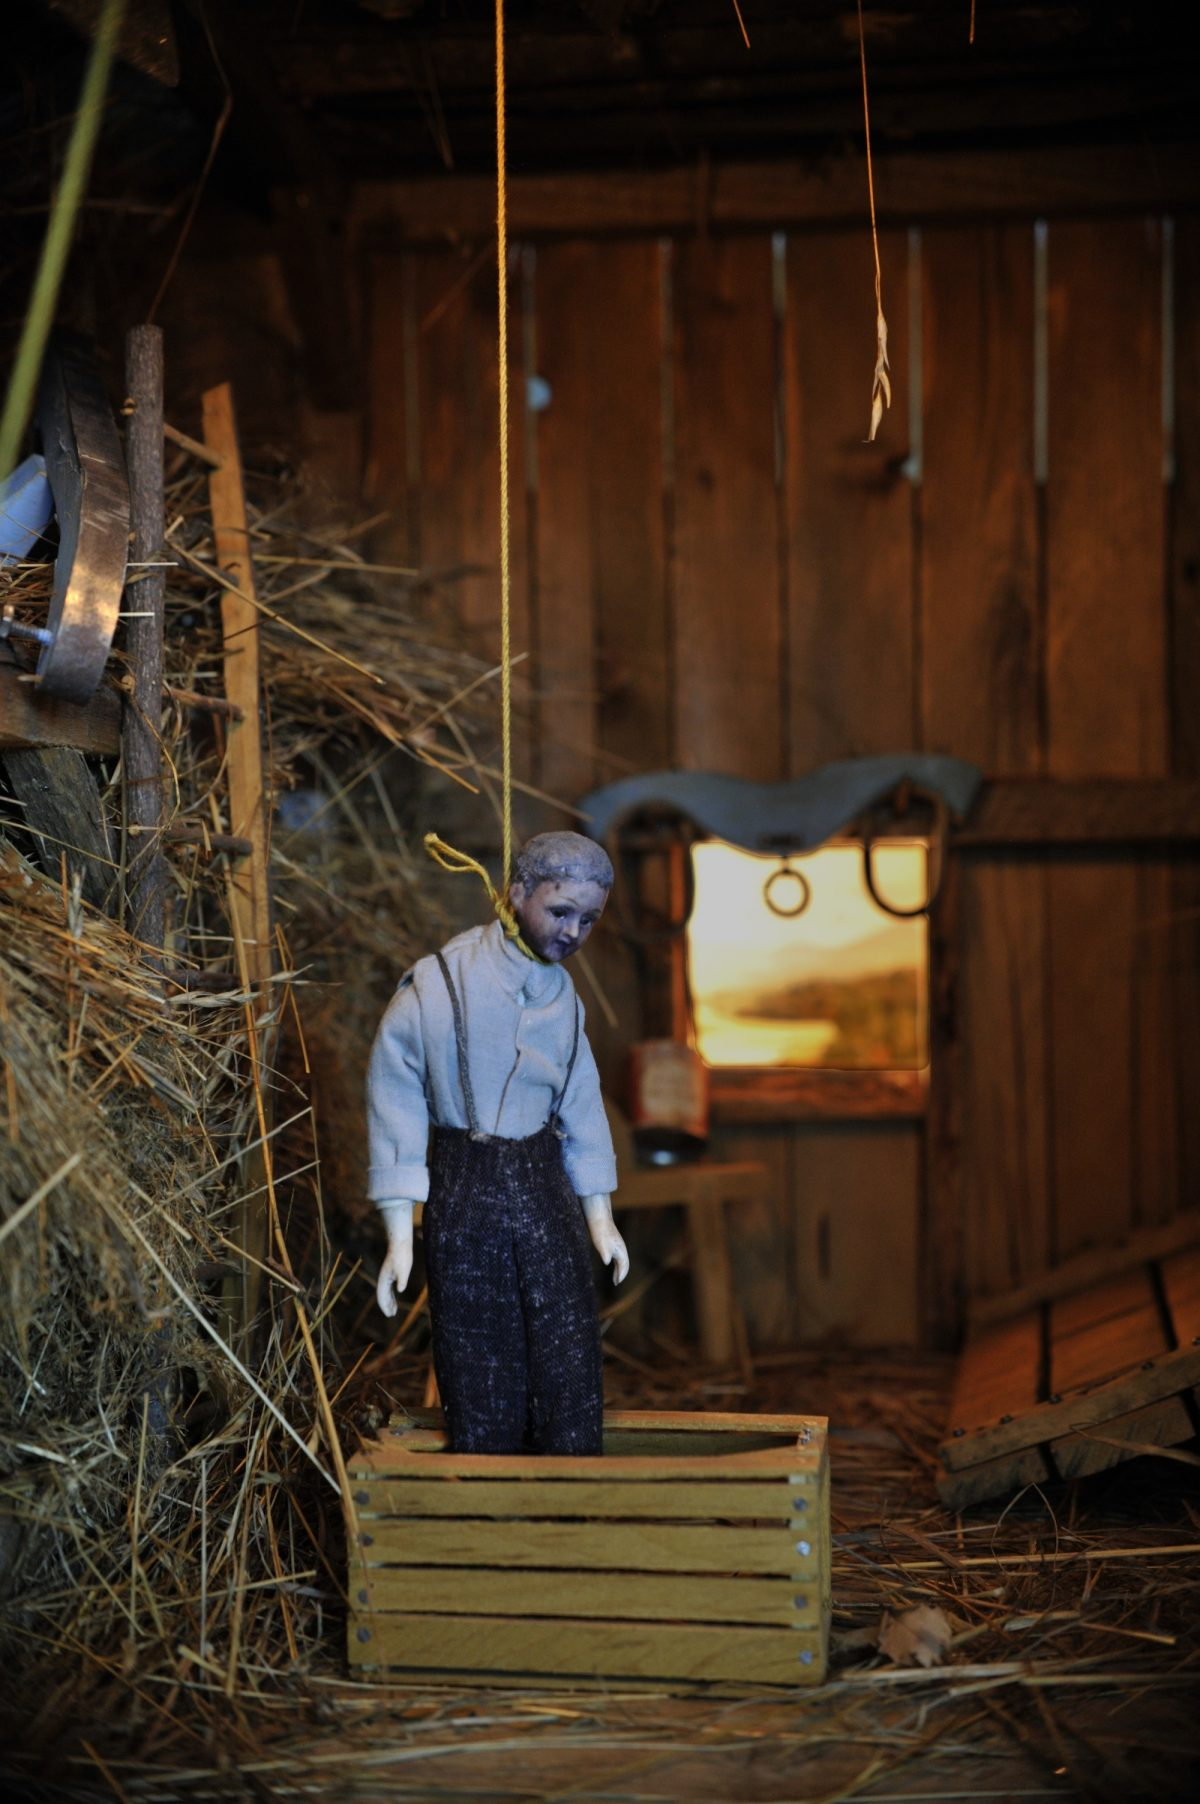 "Frances Glessner Lee, Barn, also known as ""The Case of the Hanging Farmer"" (detail), about 1943-44. Collection of the Harvard Medical School, Harvard University, Cambridge, MA, courtesy of the Office of the Chief Medical Examiner, Baltimore, MD. Photograph by Susan Marks, Courtesy of Murder in a Nutshell documentary"